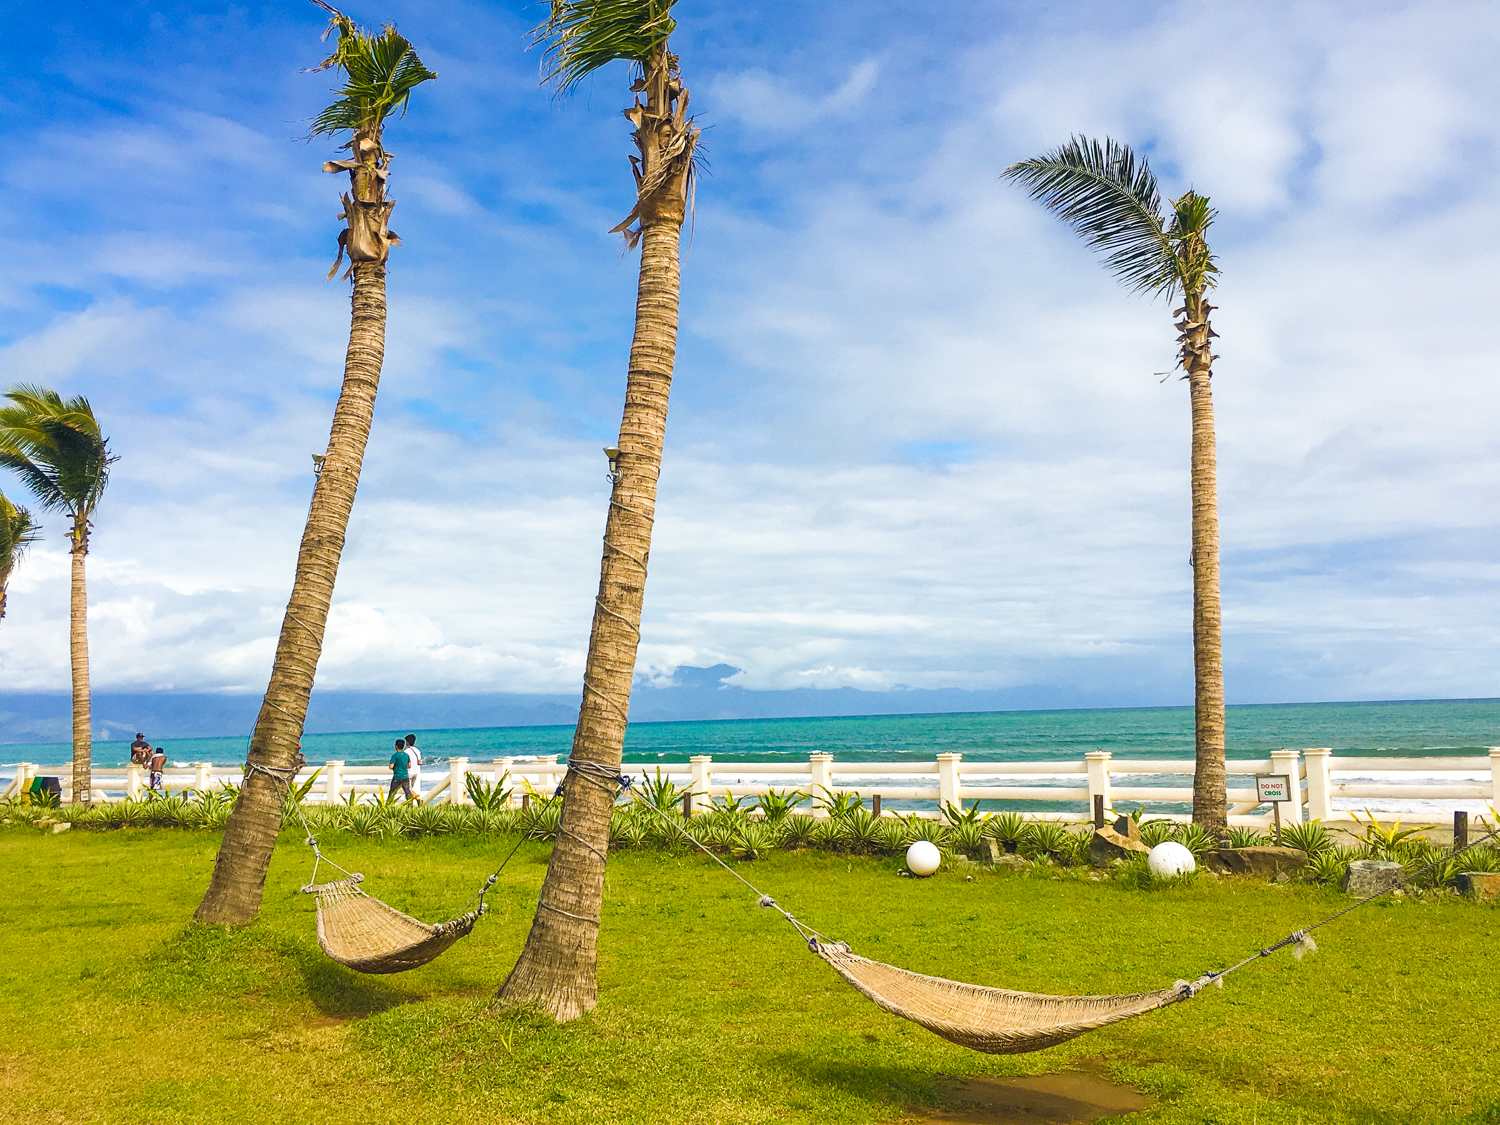 Baler, Philippines: Costa Pacifica Resort Review